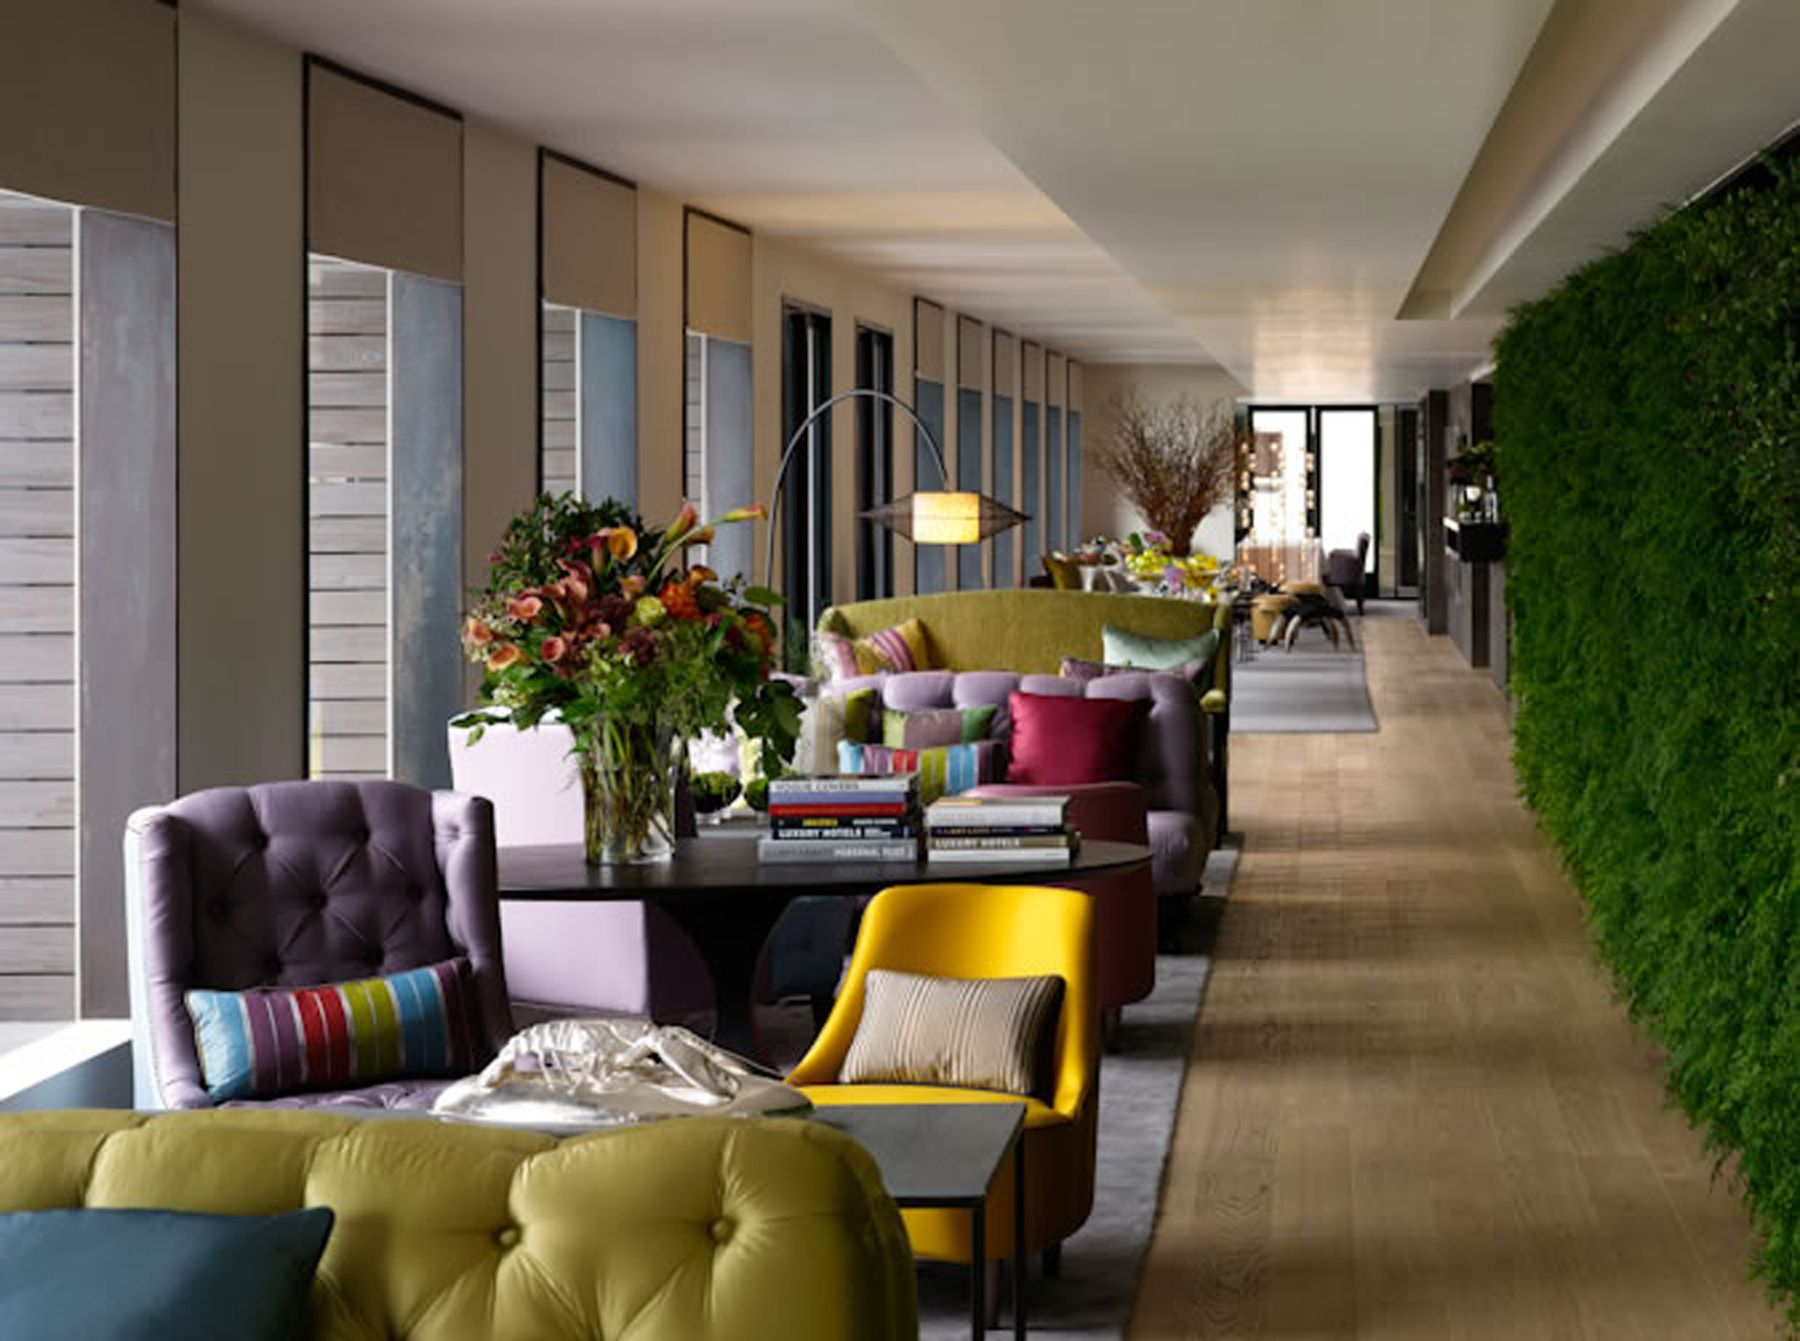 bright colors hotel lobby lounge - google search | ri waters